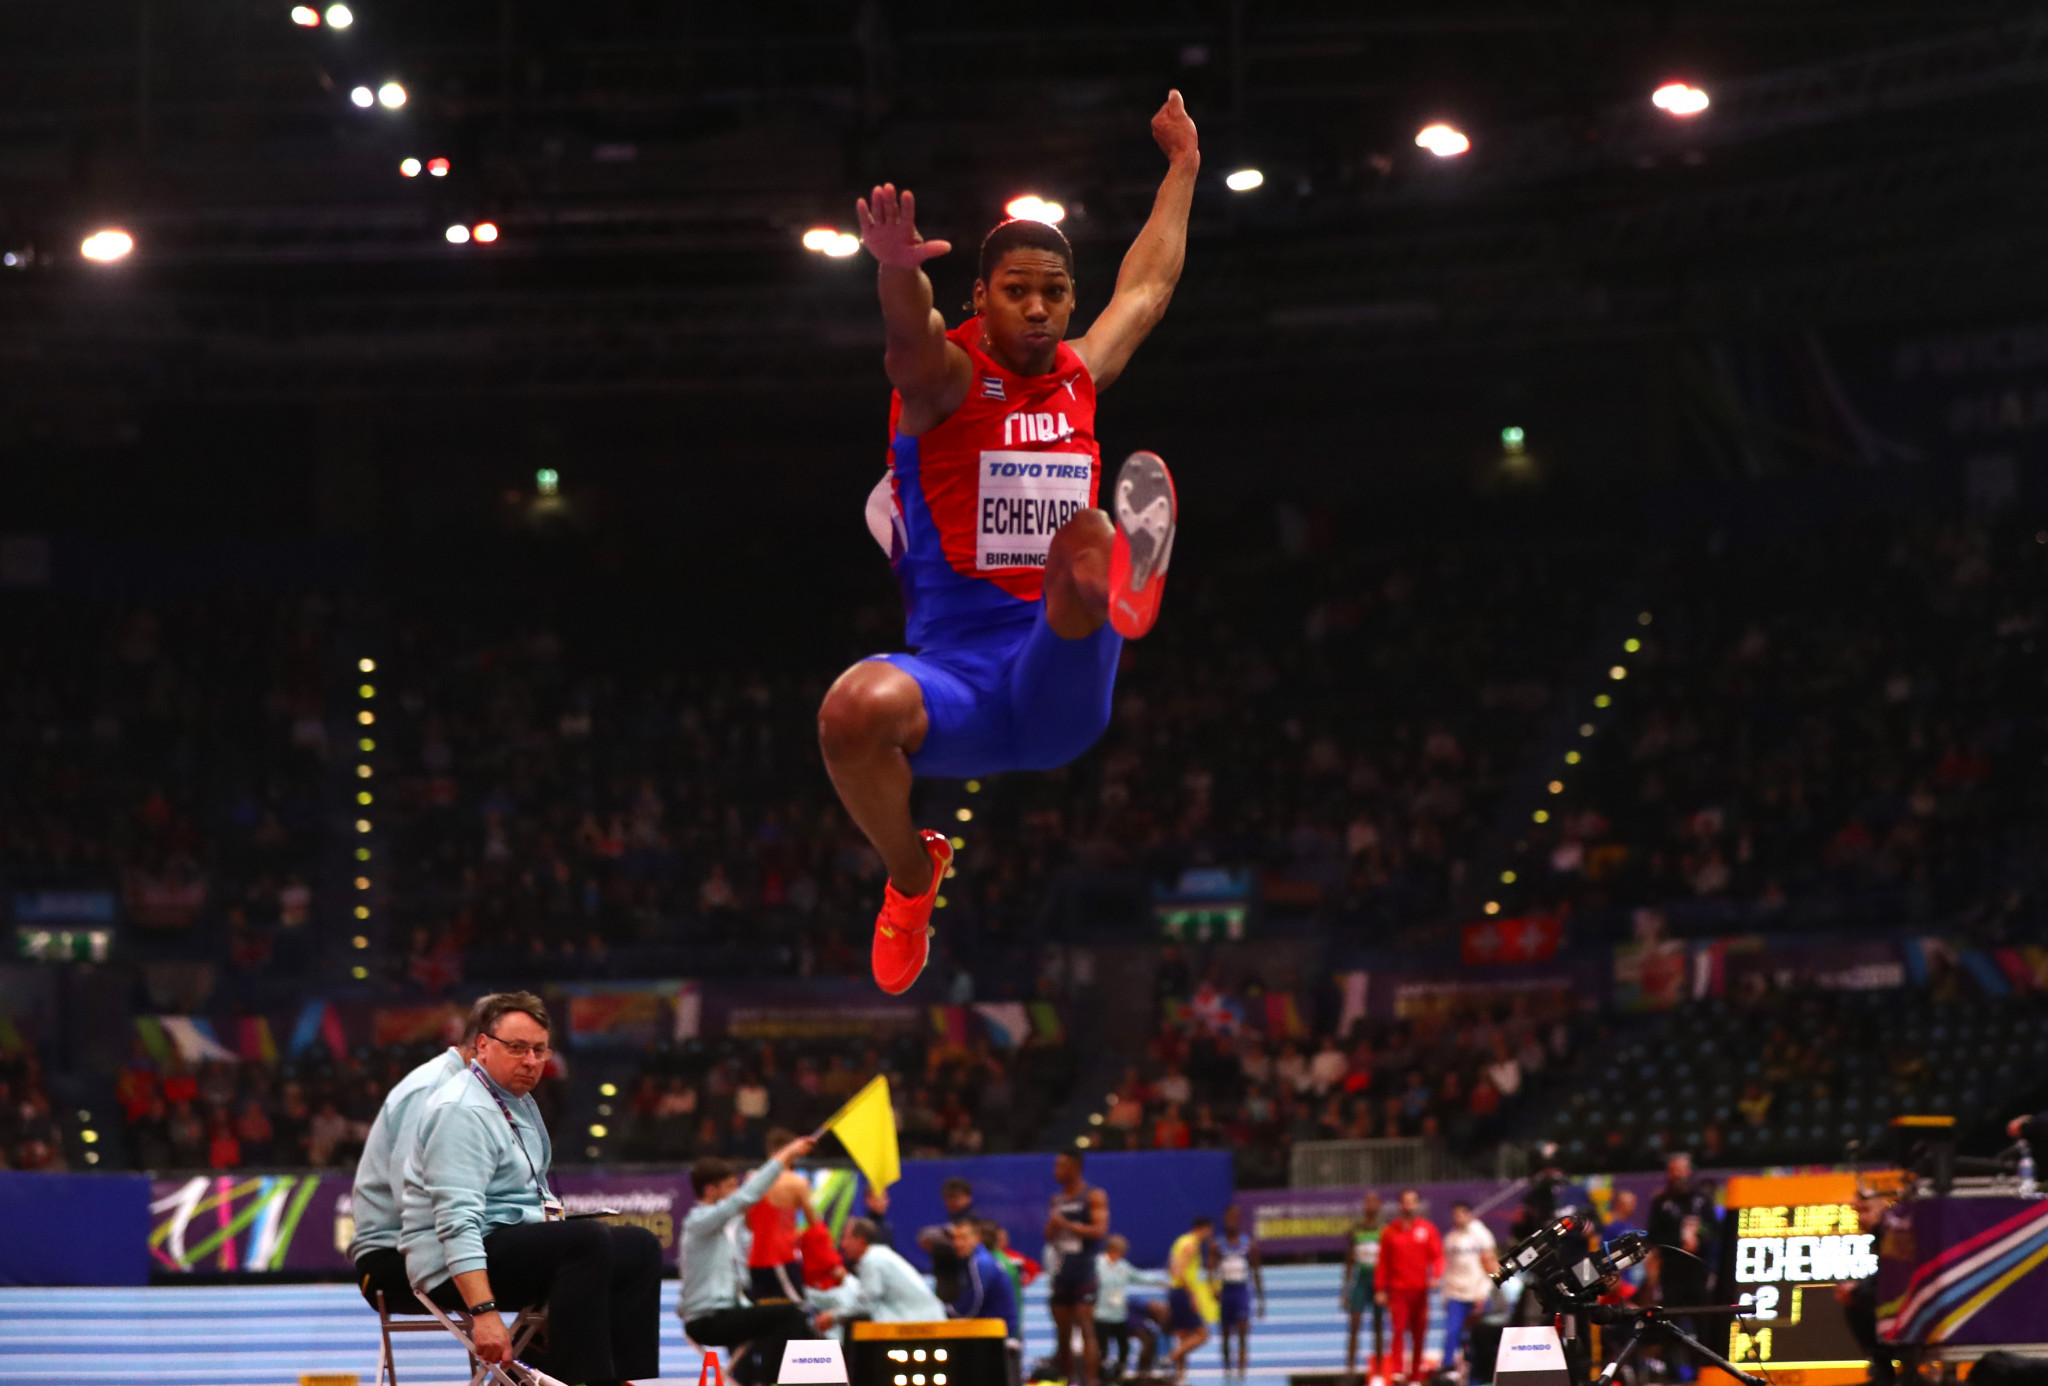 All eyes on long jumper Echevarría with IAAF World Indoor Tour set to resume in Karlsruhe